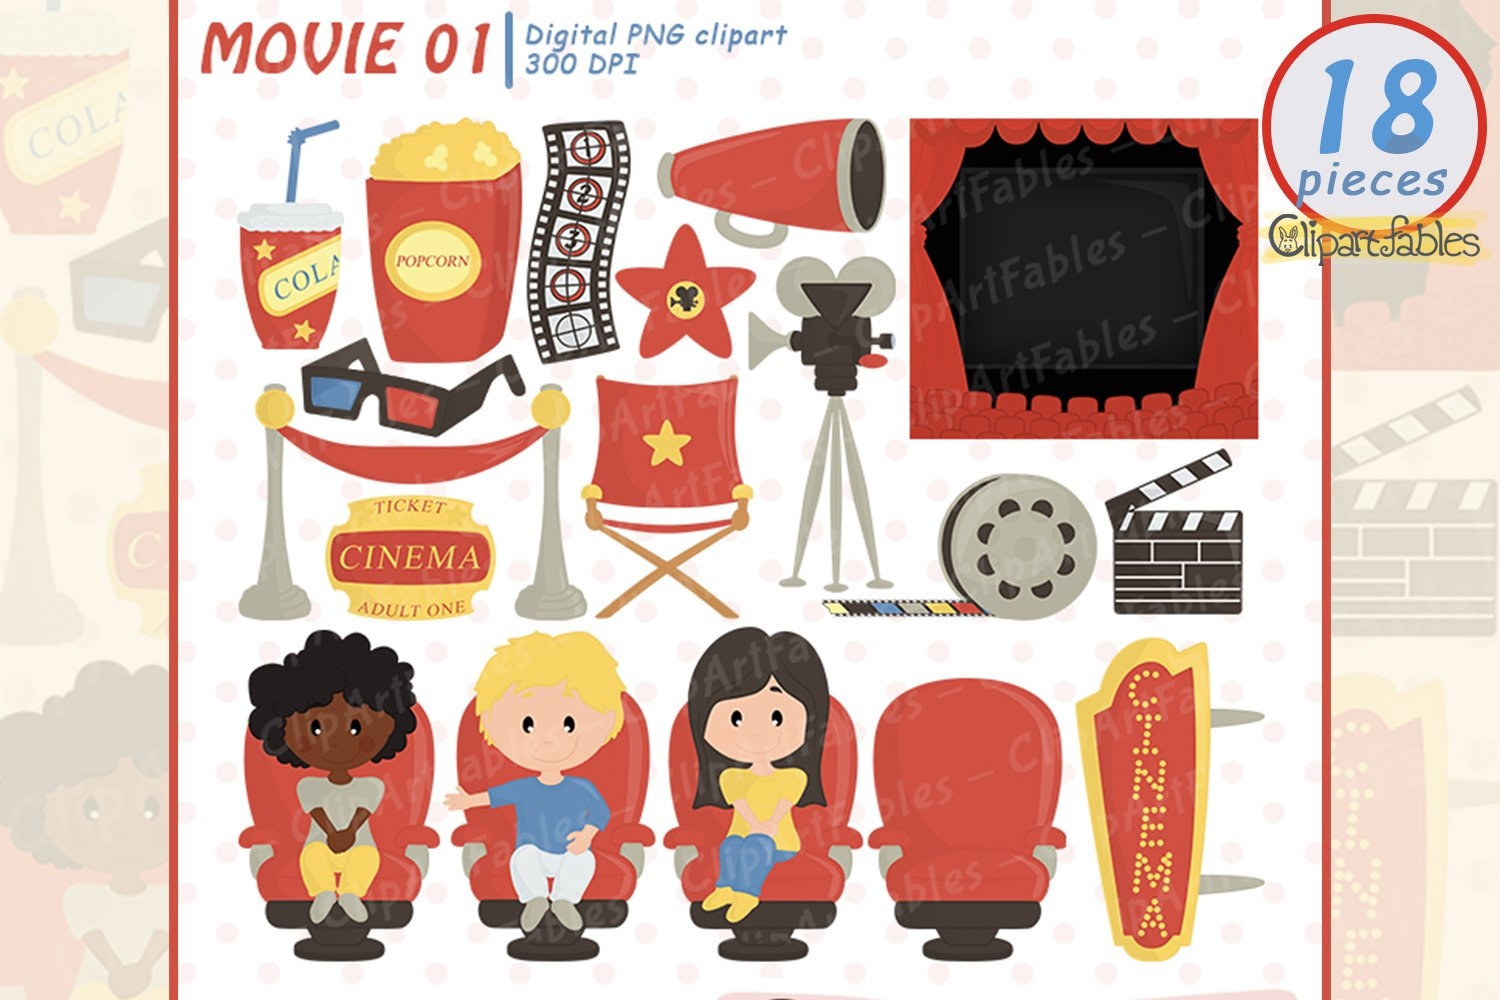 MOVIE clipart, Cinema clip art, Movie night party - INSTANT example image 1